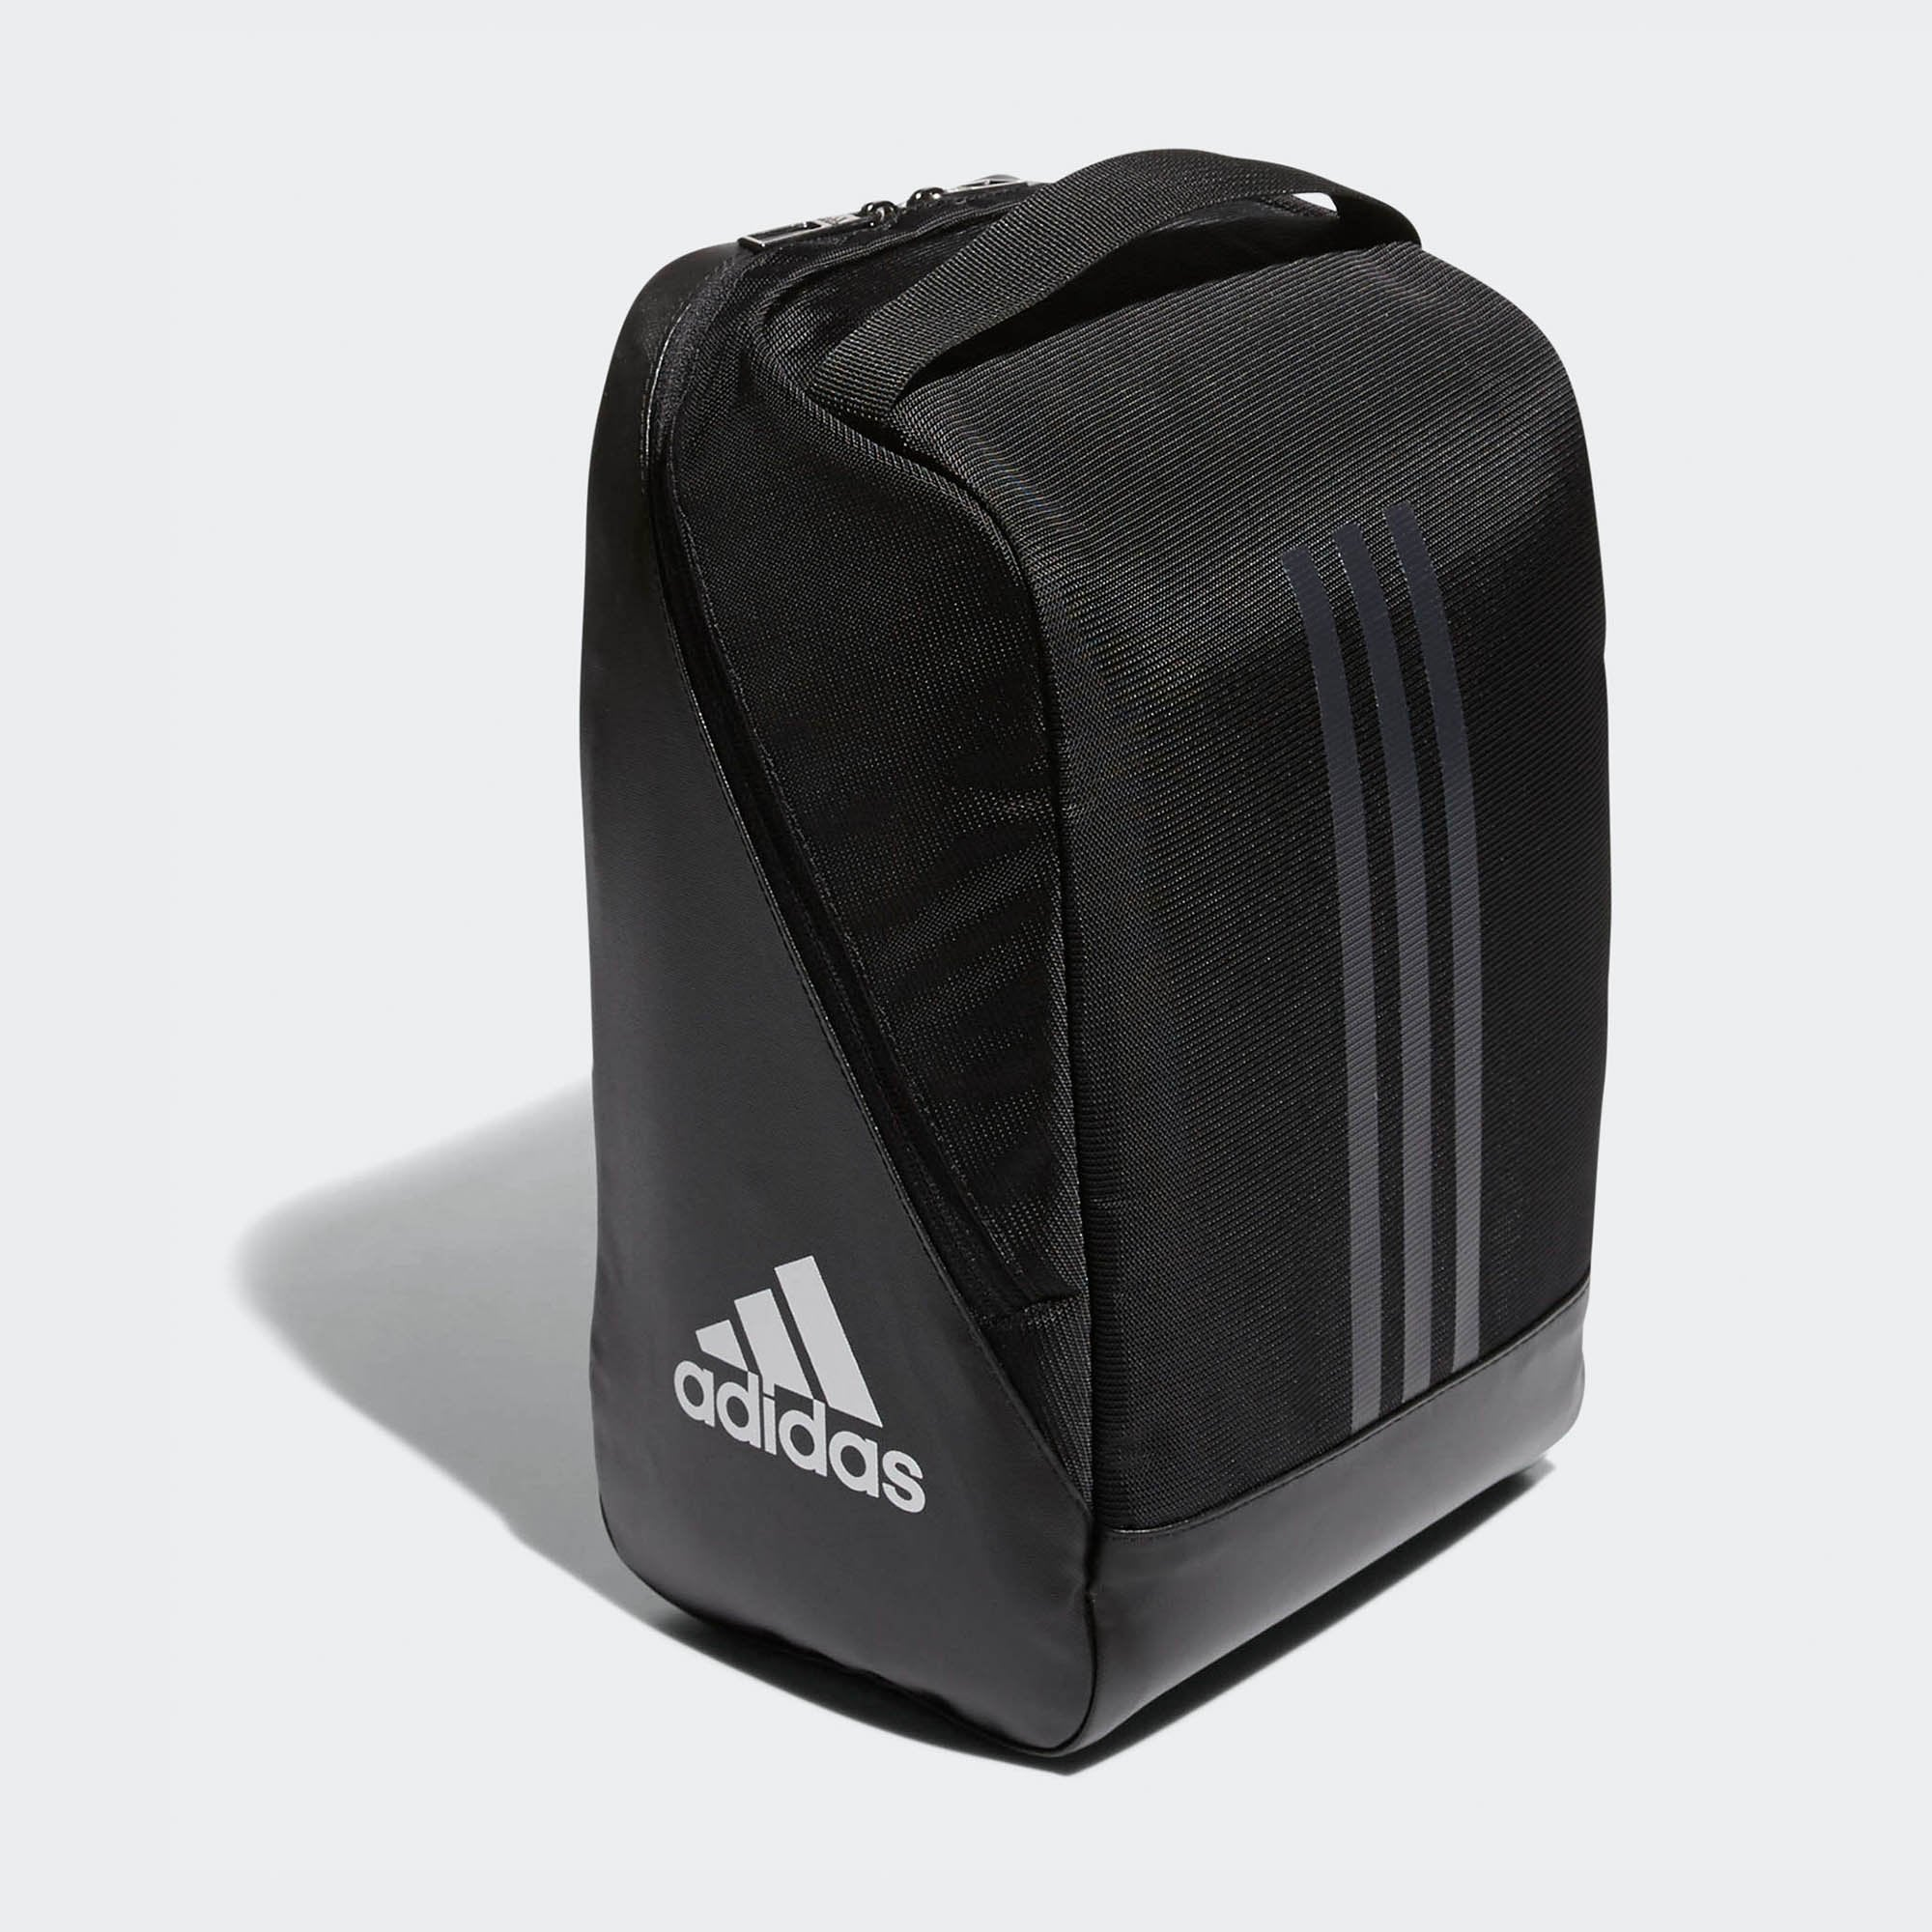 ... Buy adidas EPS Shoe Bag, Black Online in Singapore Royal Sporting ...  get  adidas Classic Backpack ... f37c373596